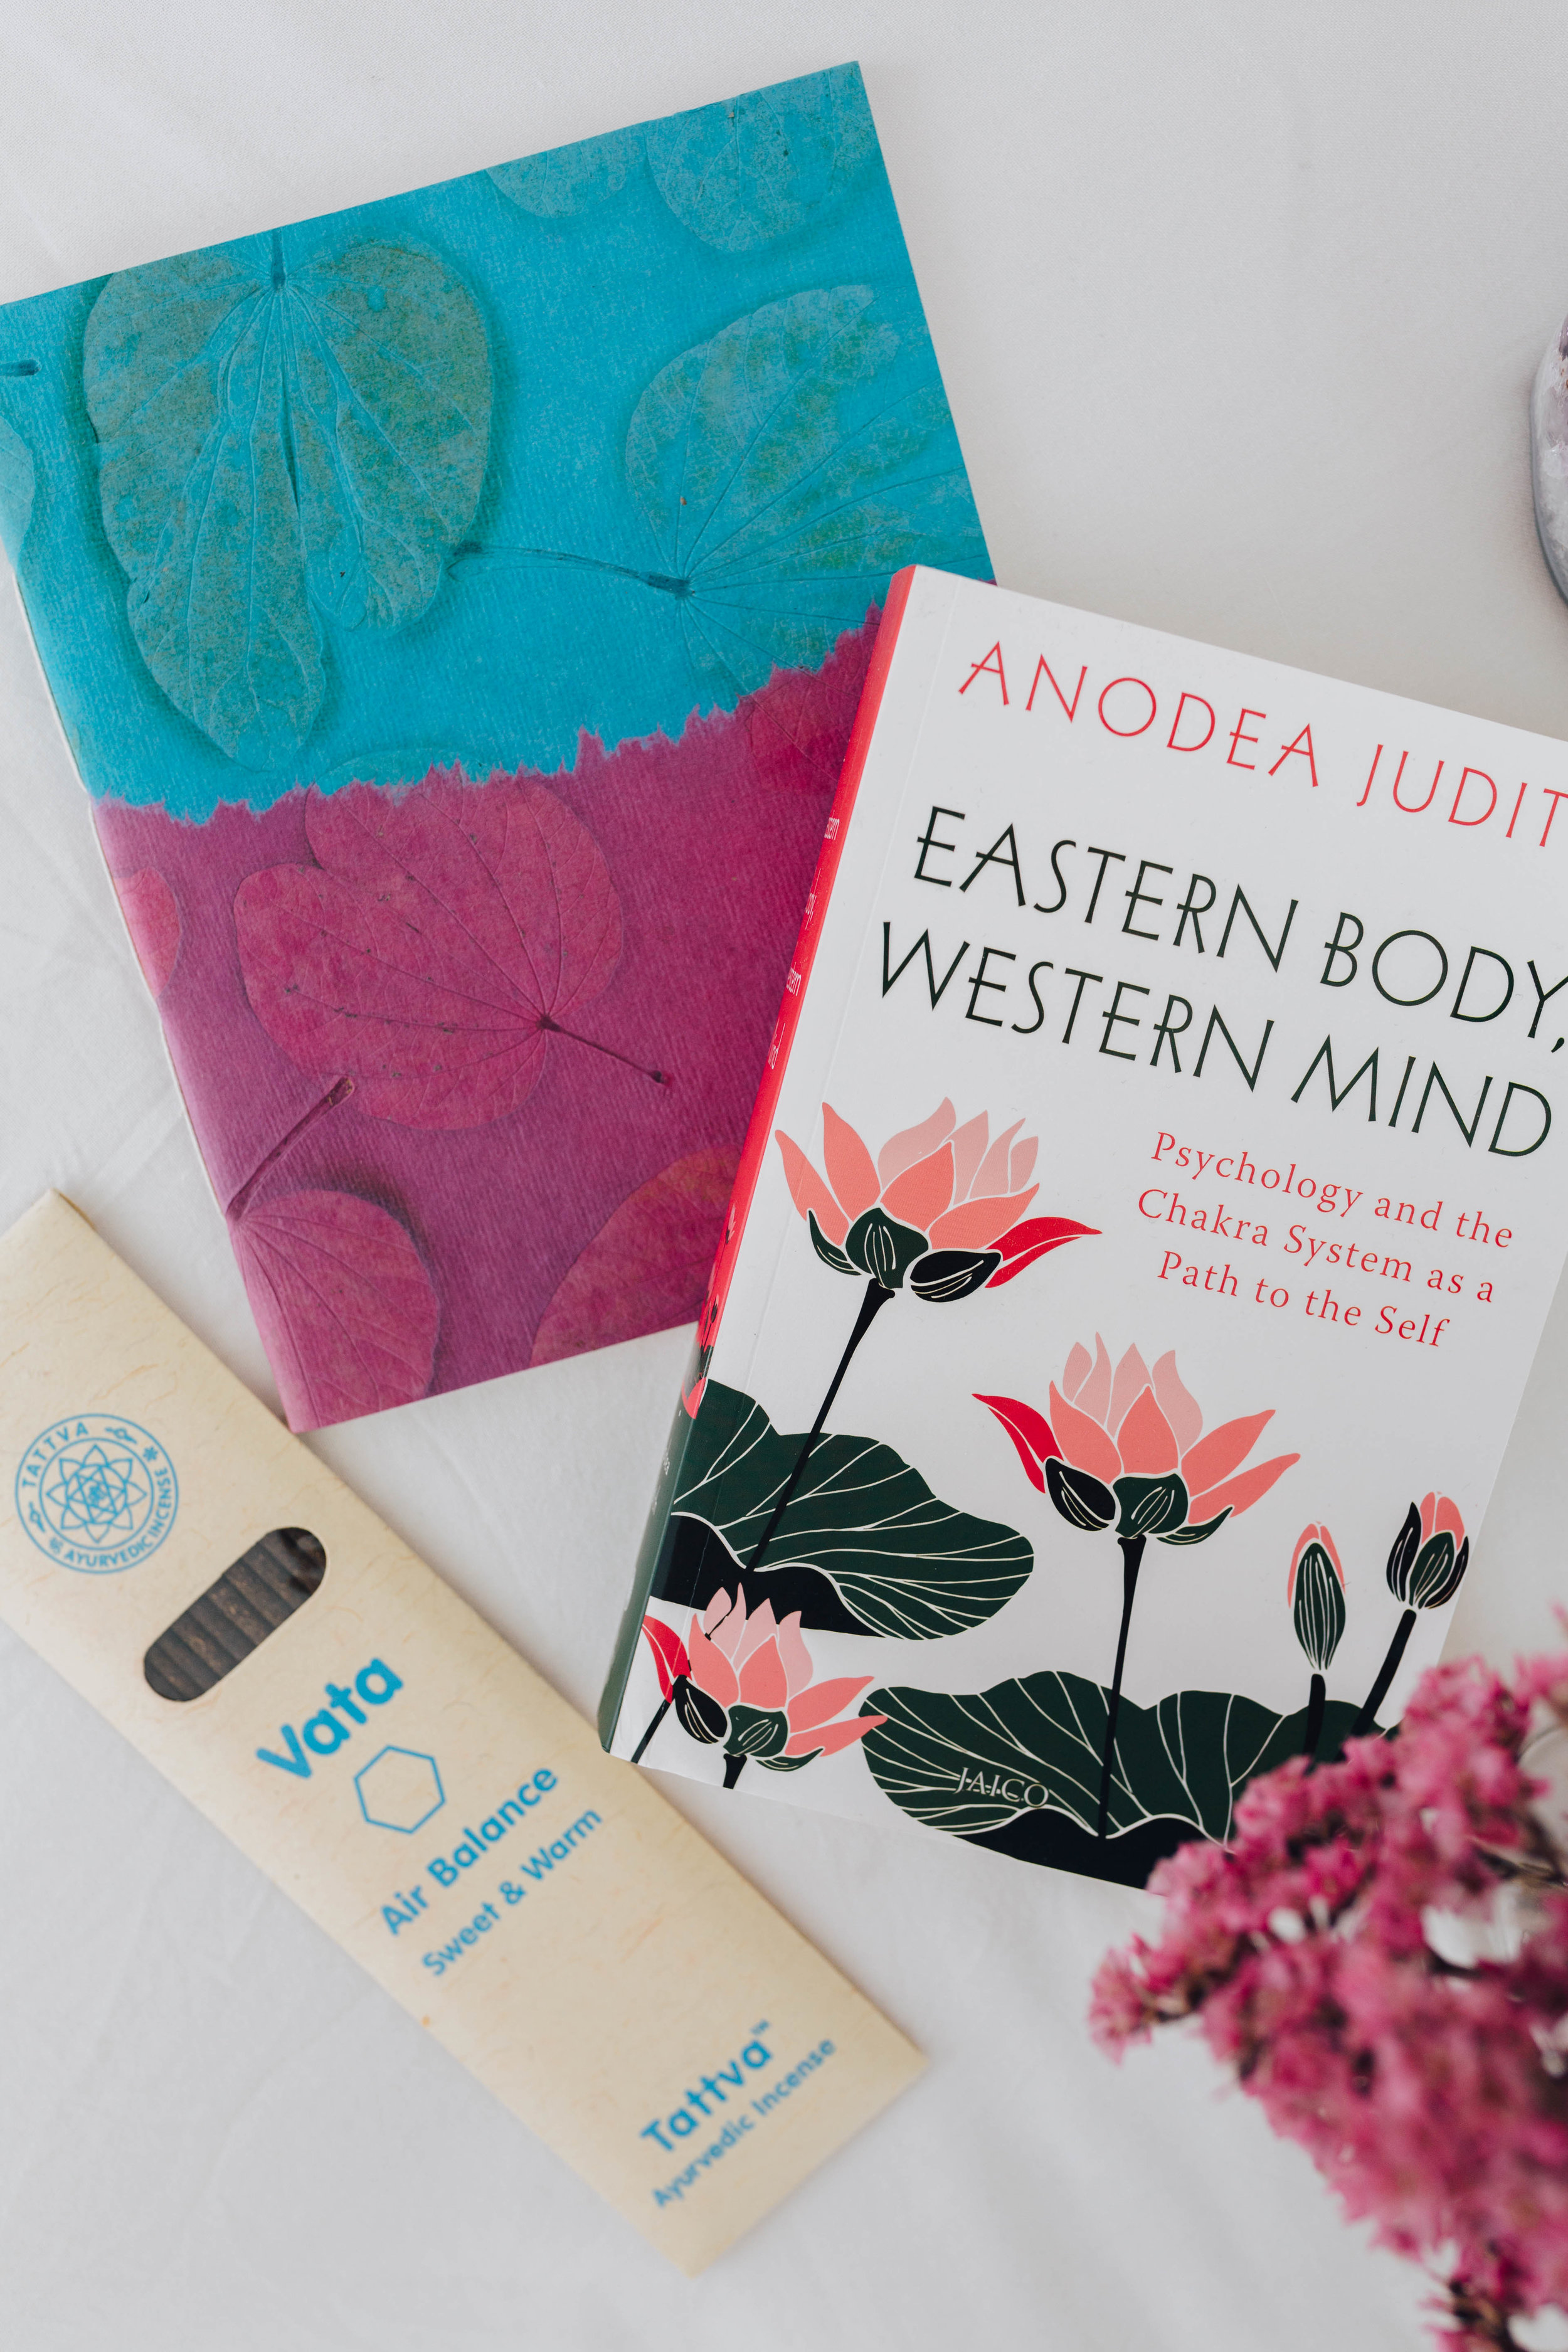 --- $50 gift ---- + Handmade paper notebook from Auroville, India + Vata balance incense + 'Easter Body Western Mind' by Anodea Judith book